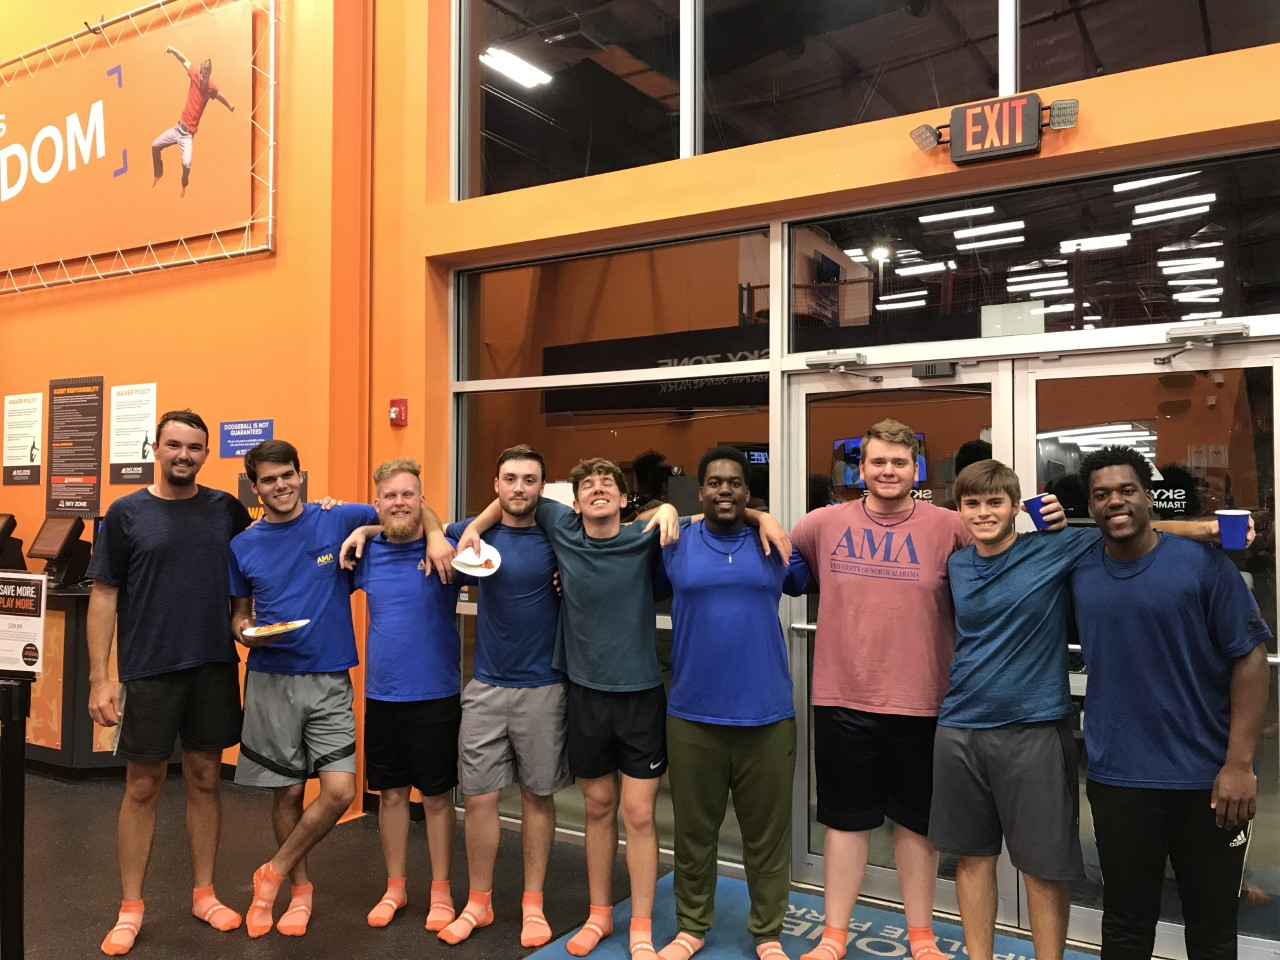 Members of AML smile together at SkyZone.